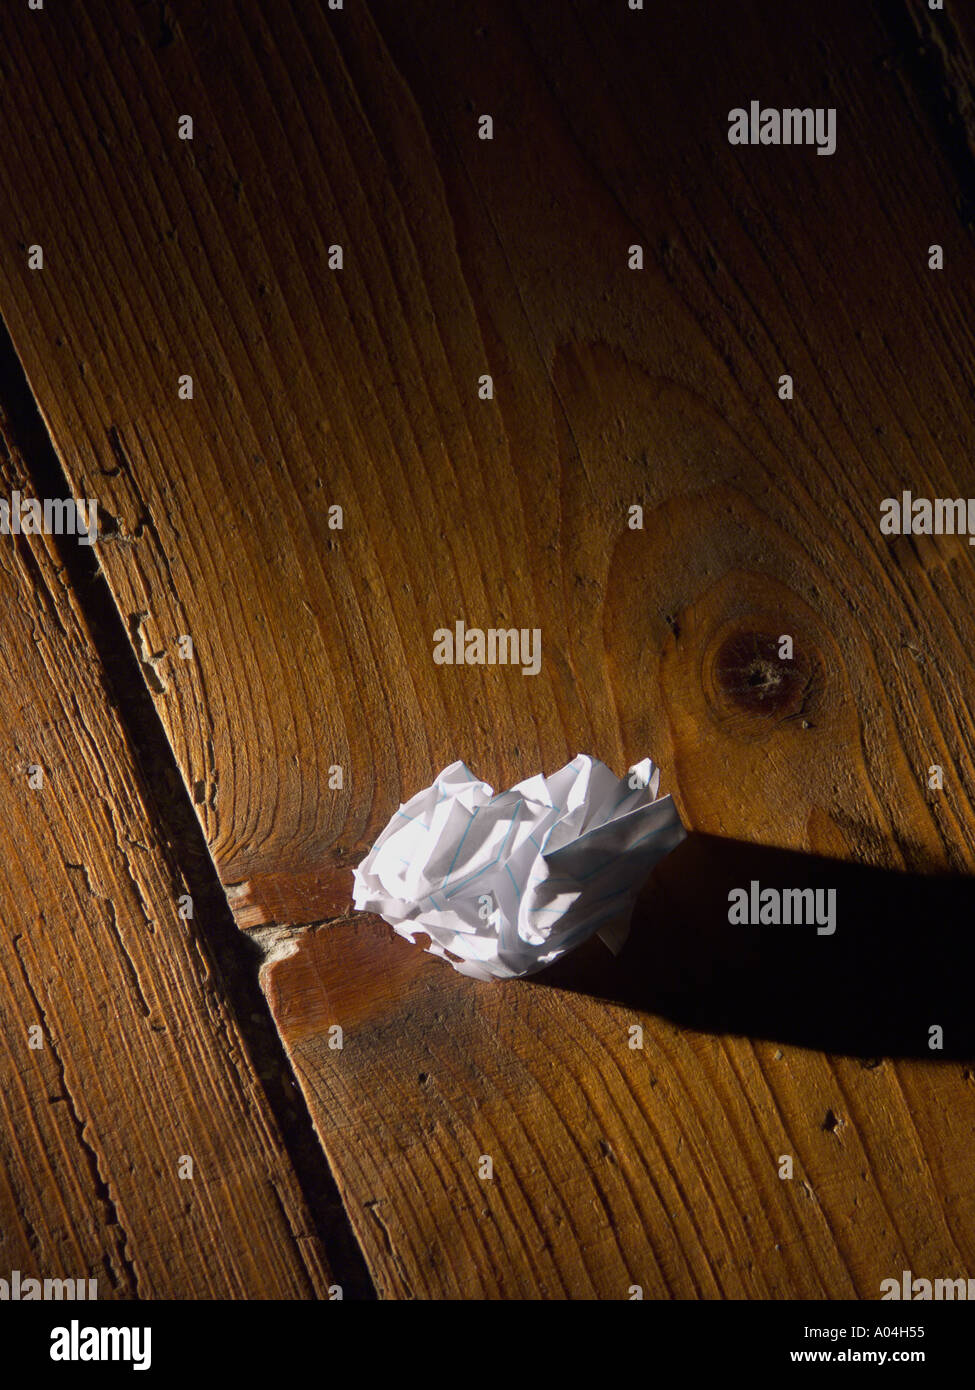 A screwed up ball of paper on the floor - Stock Image